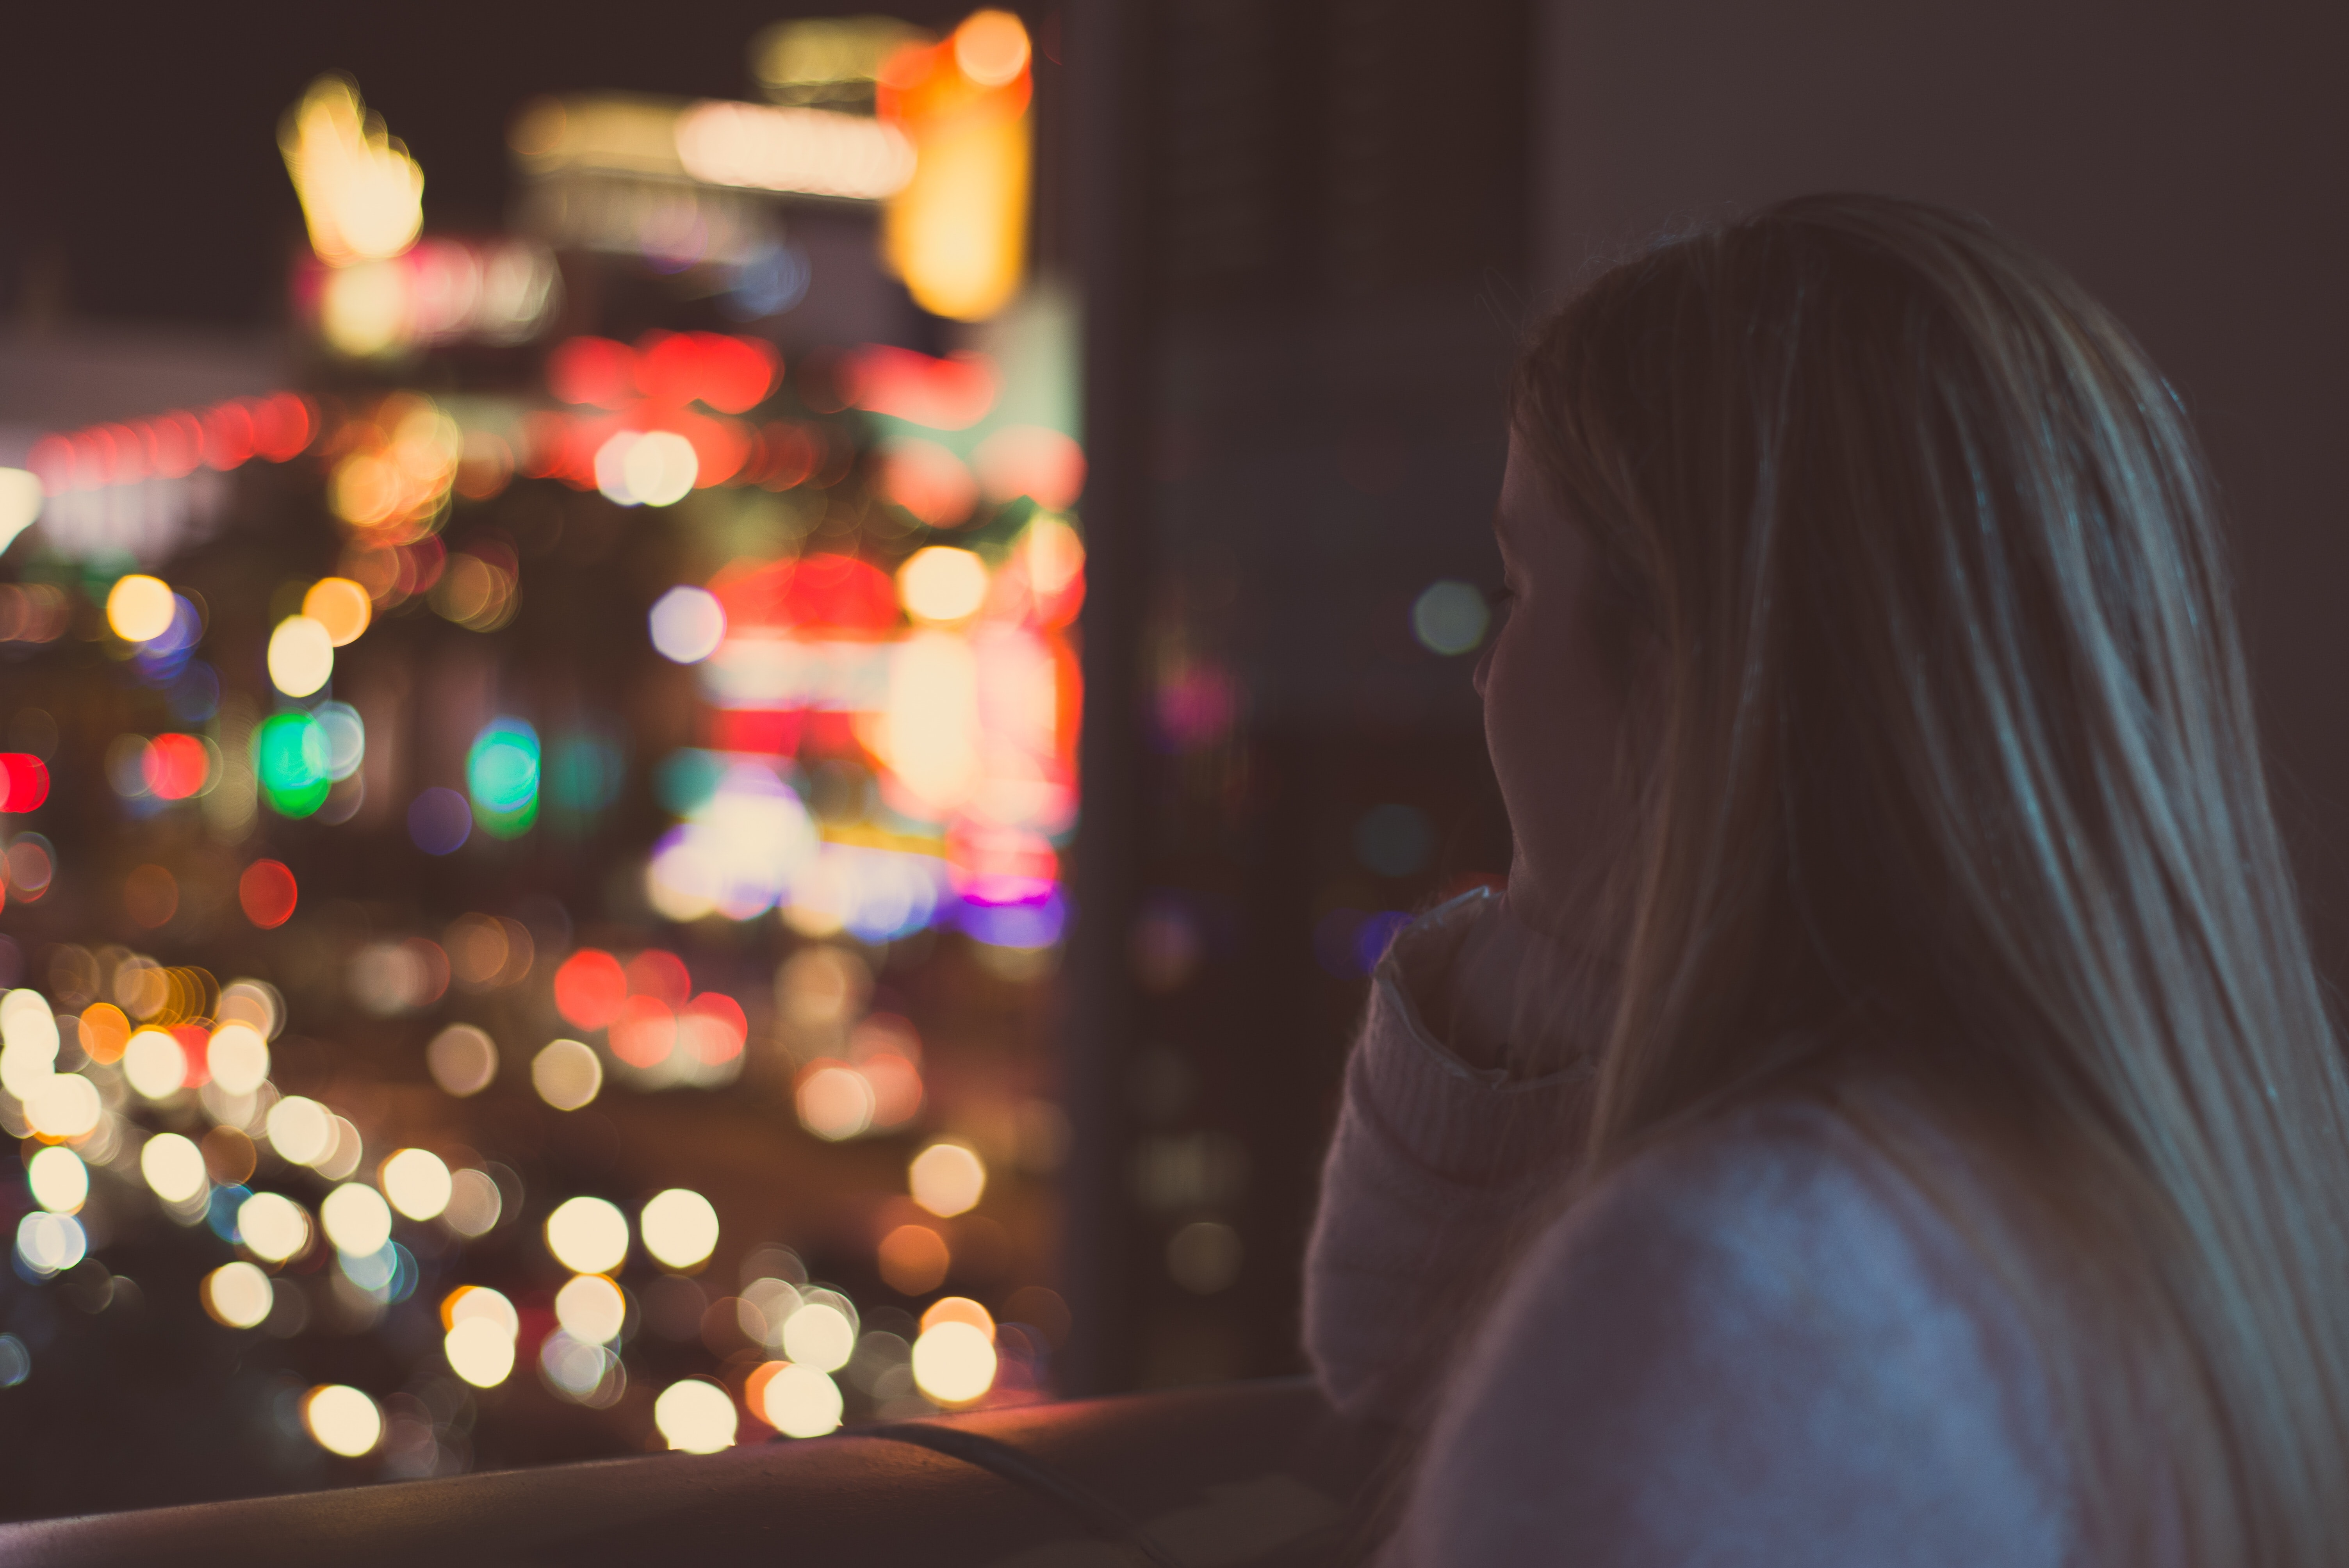 A girl with blonde hair peers out the window at a bokeh of city lights and traffic.